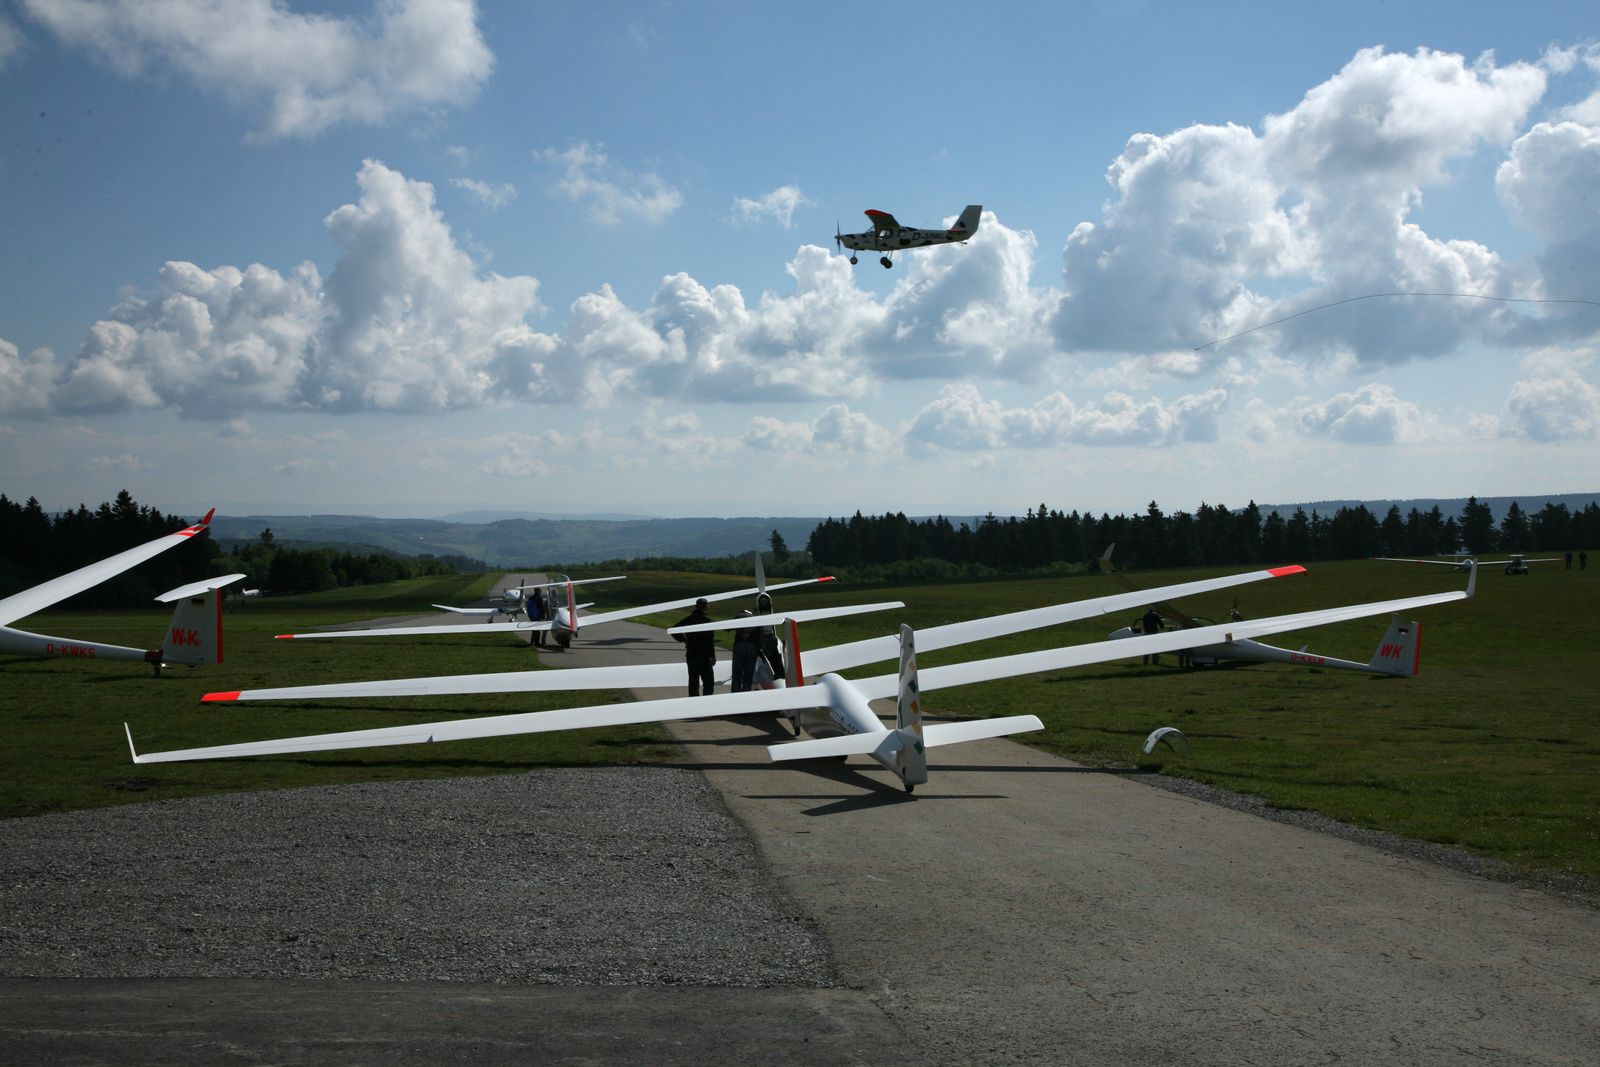 At the Fliergerschule Wasserkuppe, towing gliders succeed at a high rate - Photo © Bernard Duyck 05.2014